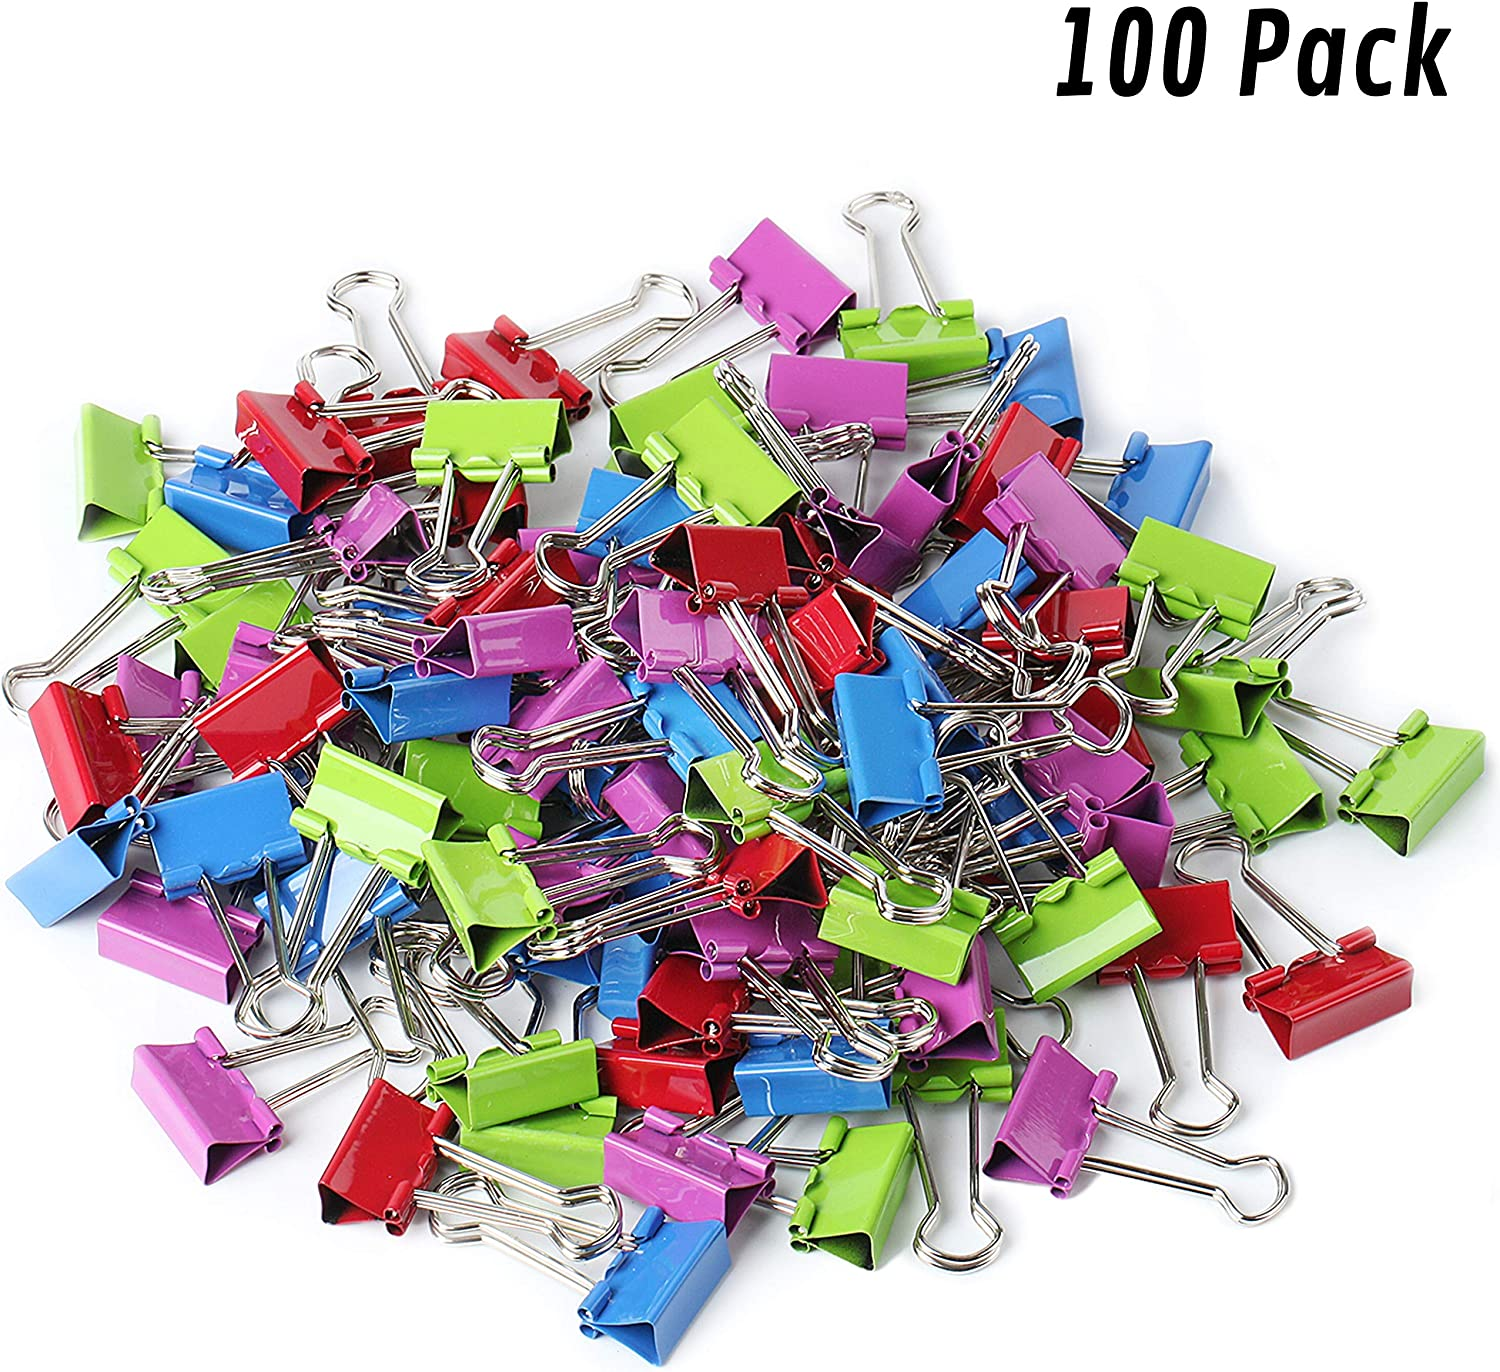 Mr. Pen- Binder Clips, Small Binder Clips, Pack of 100 Clips, Binder Clips Small, Paper Clips, Office Supplies, Colored Binder Clips, Paper Clamps, Office Clips, Mini Clips, Clips for Paper